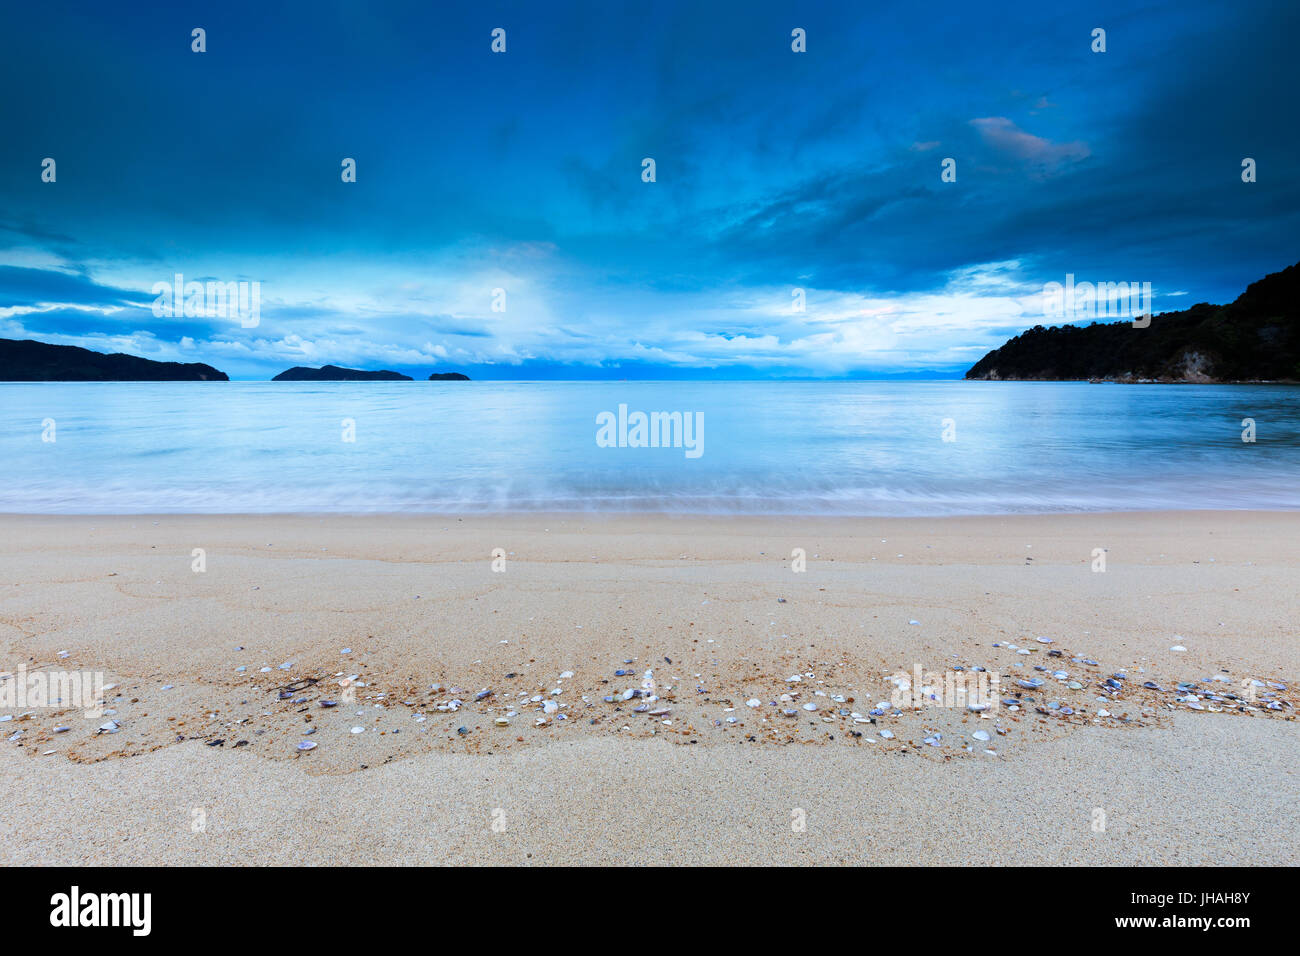 Shells washed ashore on a beautiful cold, blue beach in New Zealand. - Stock Image